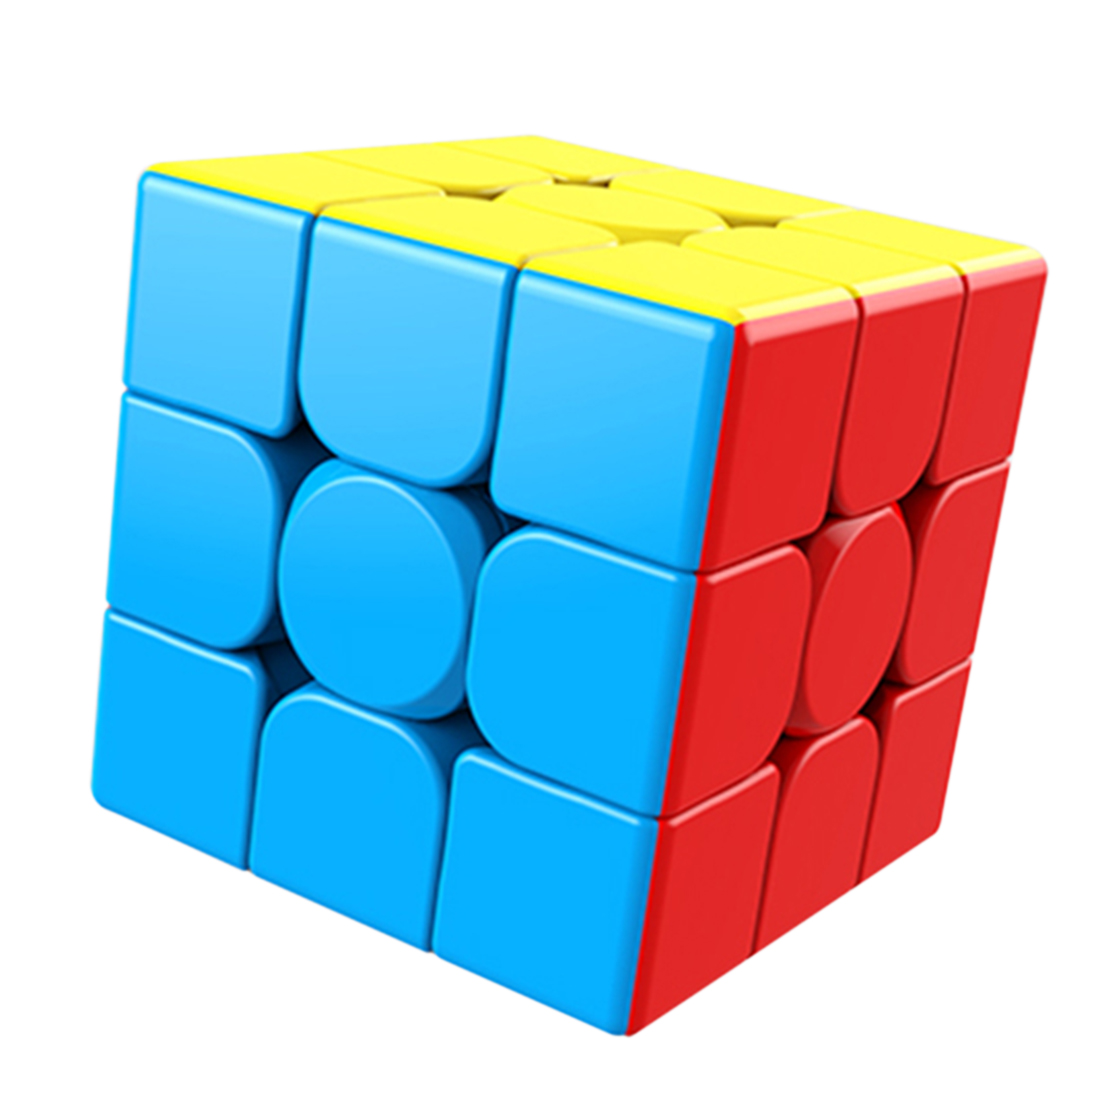 New Accive Moyu MeiLong MF8841 3x3x3 Magic Cube High Quality Speed Magic Cube- Colorful